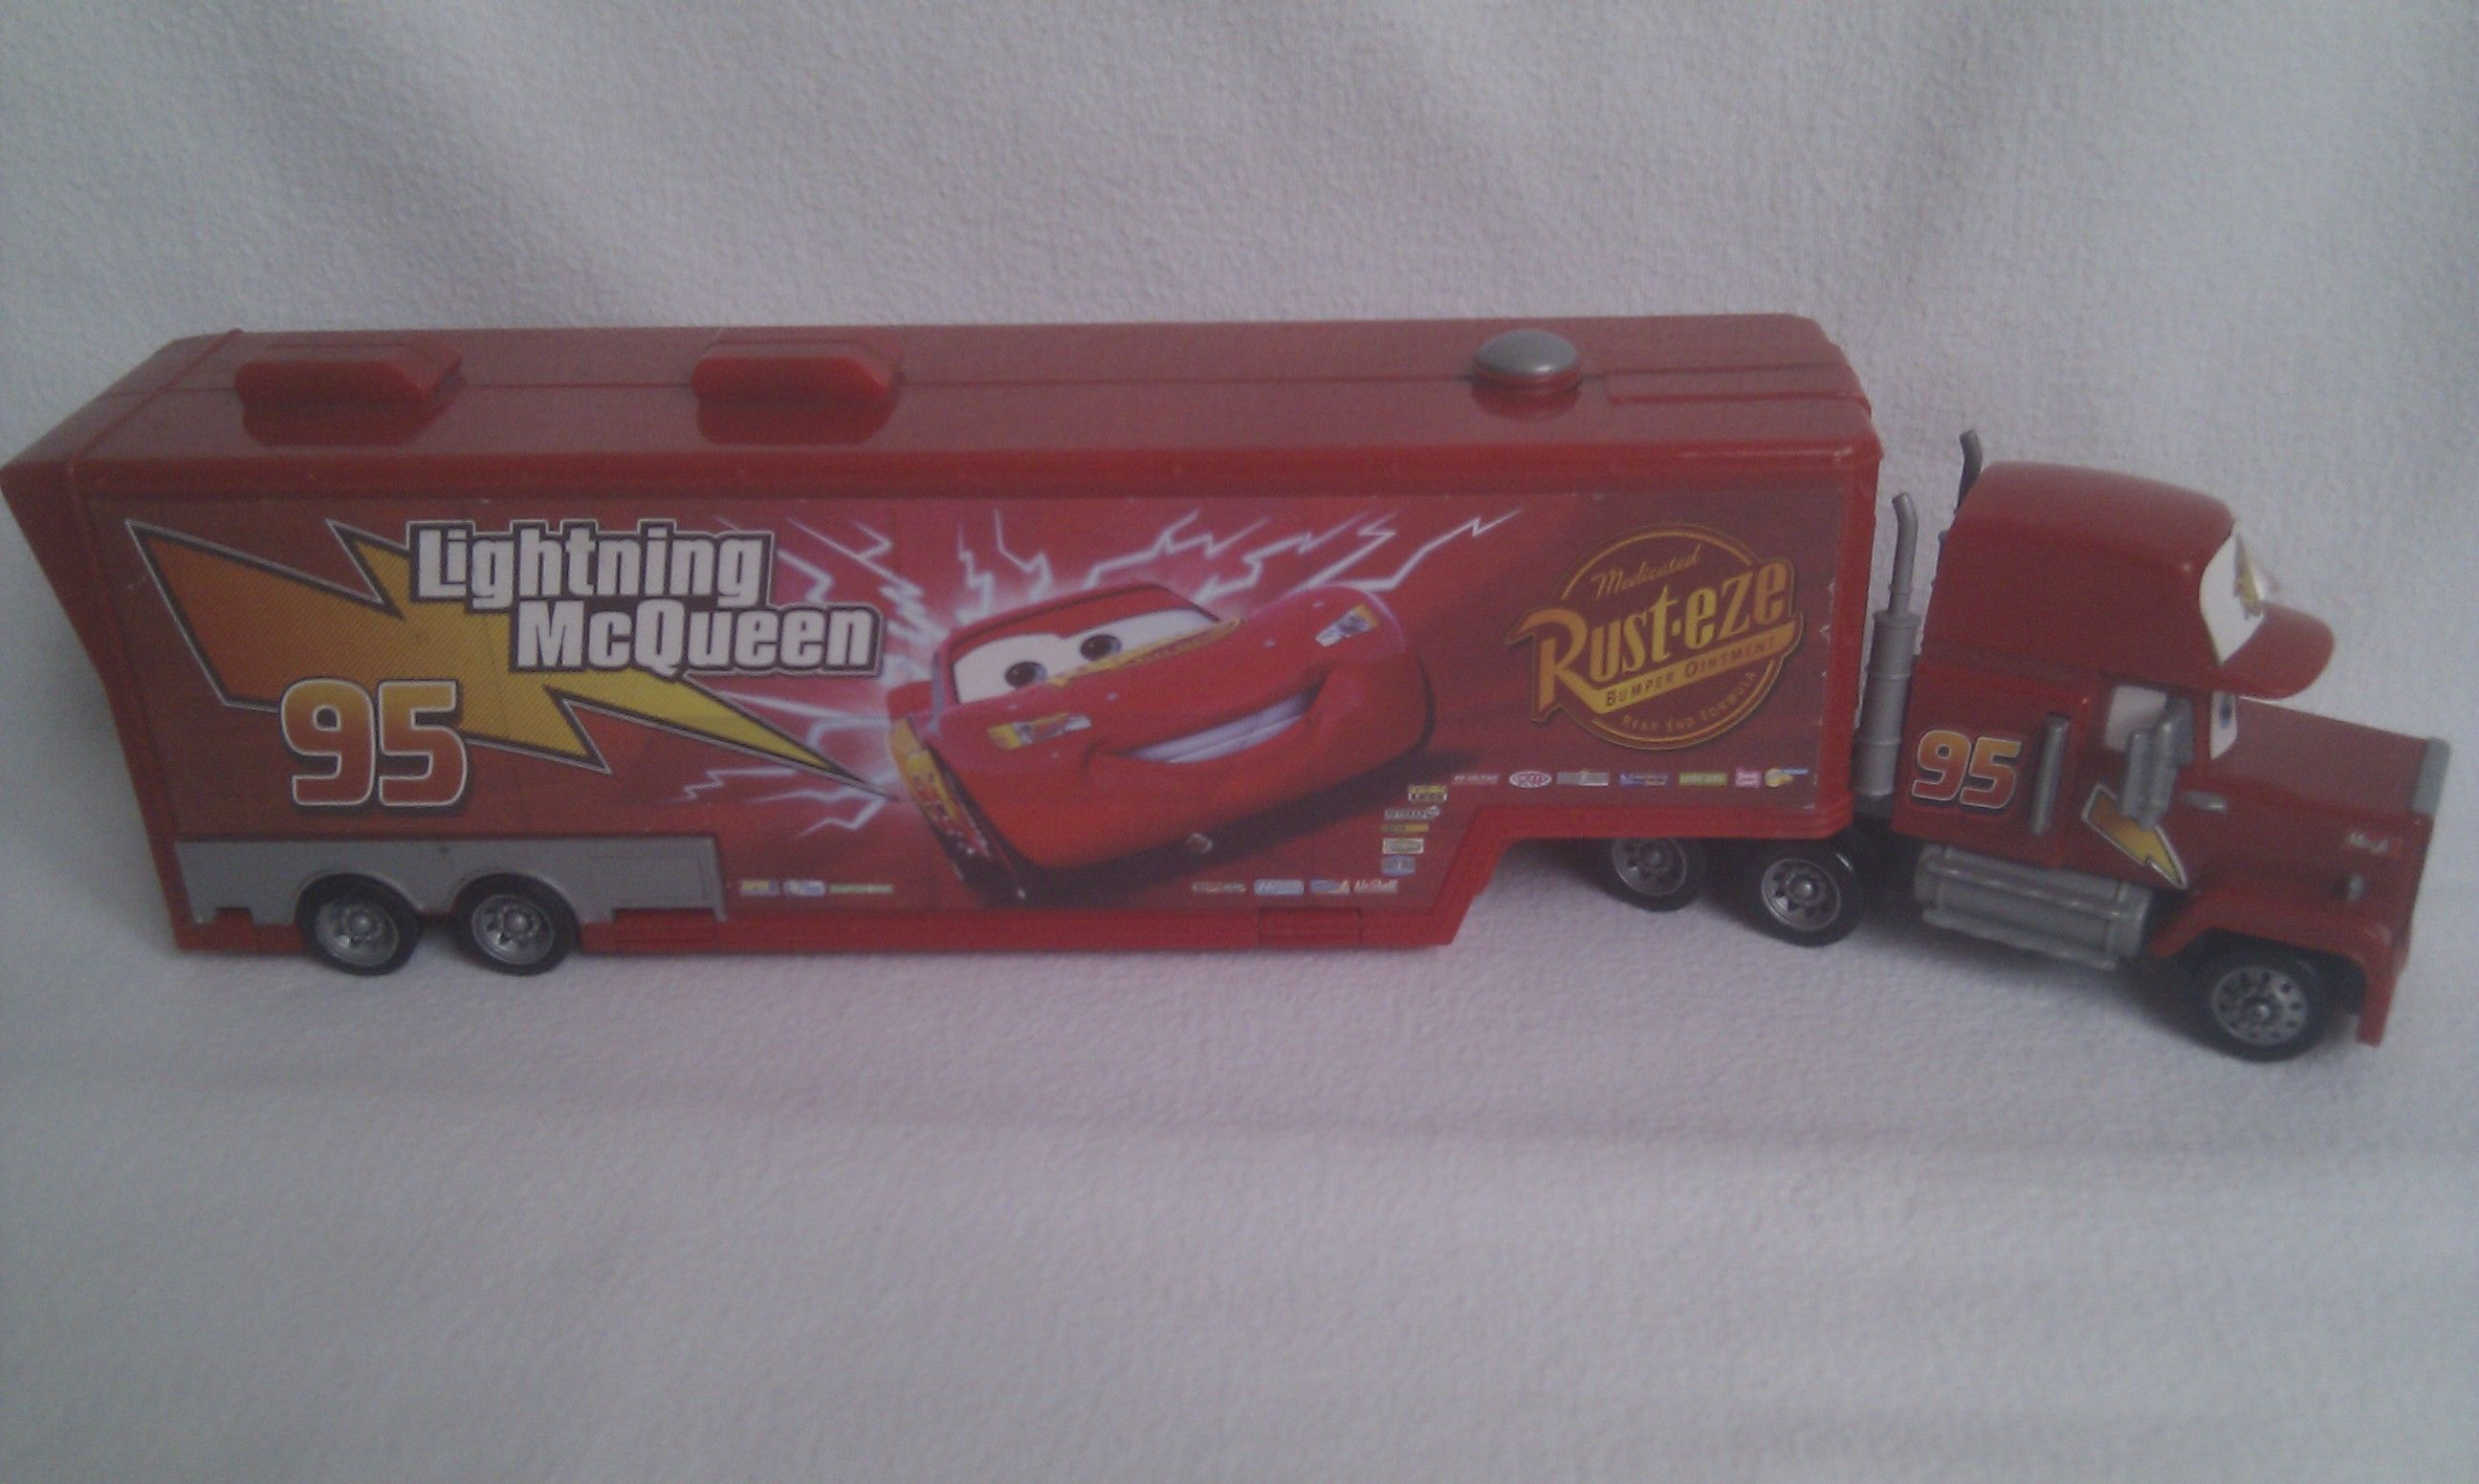 Disney Cars Mack Mac Hauler Truck Rust Eze Lightning